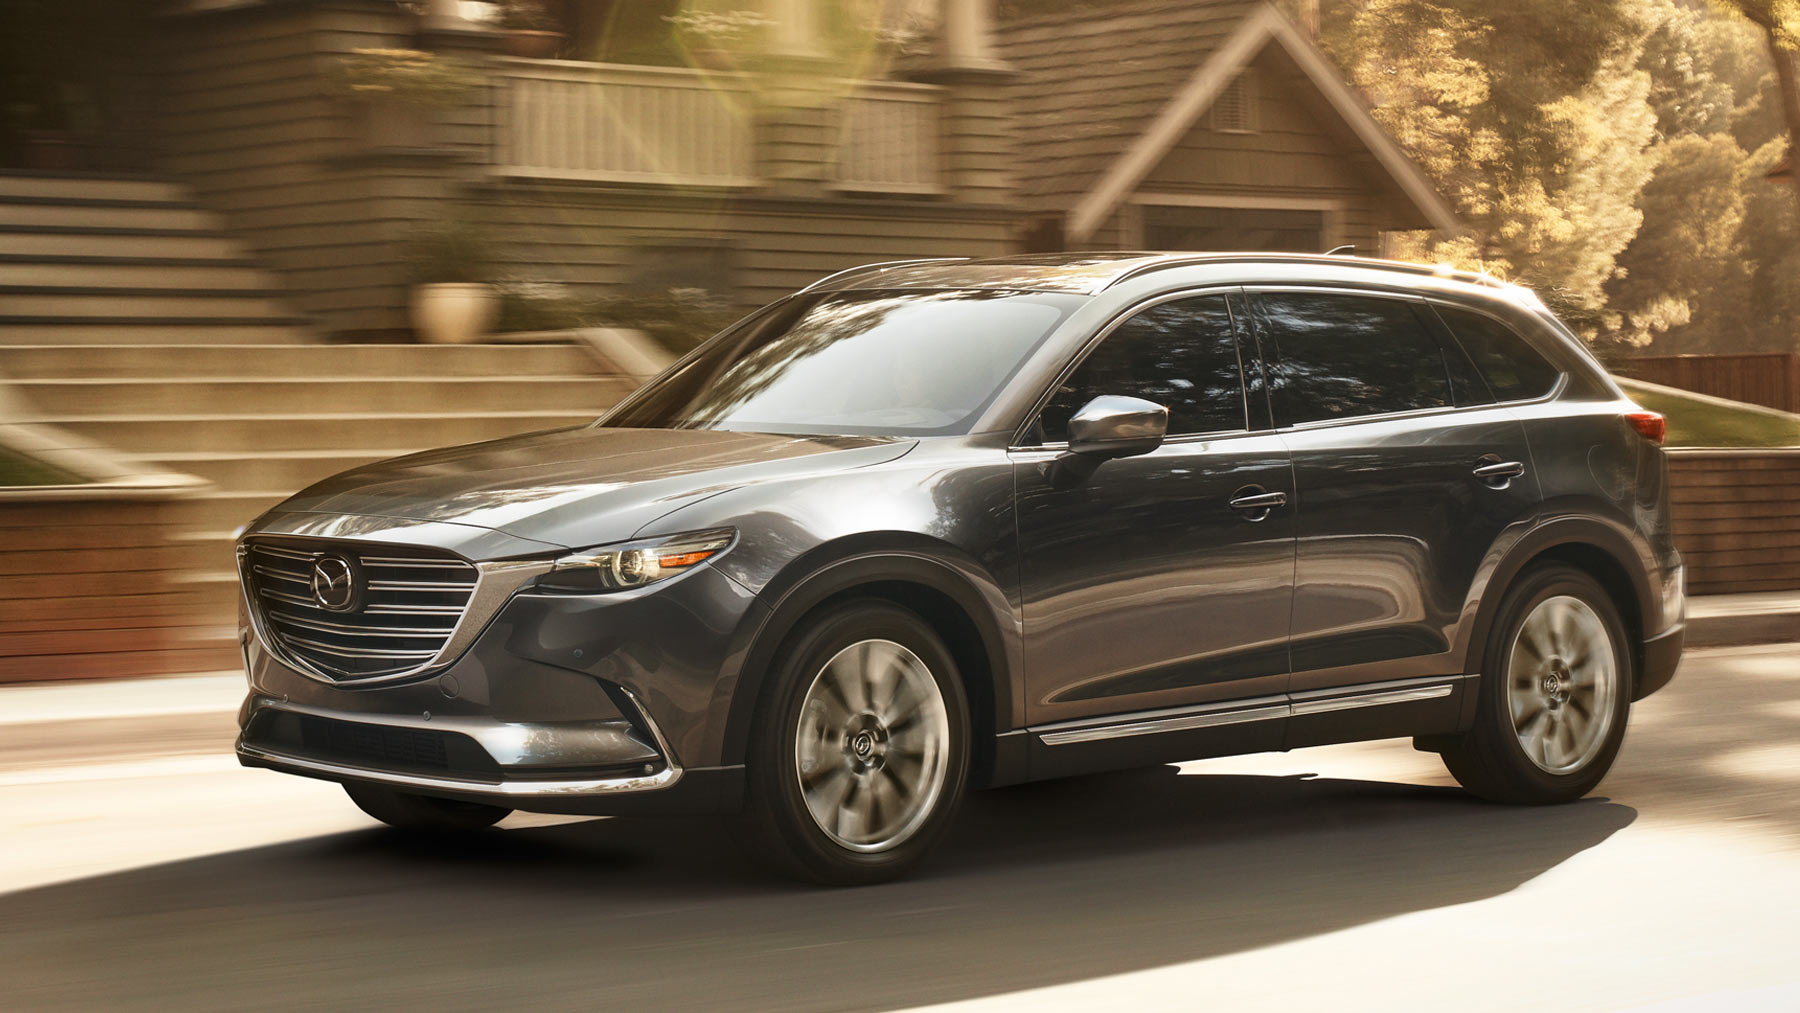 2018 Mazda CX-9 Leasing in Elk Grove, CA